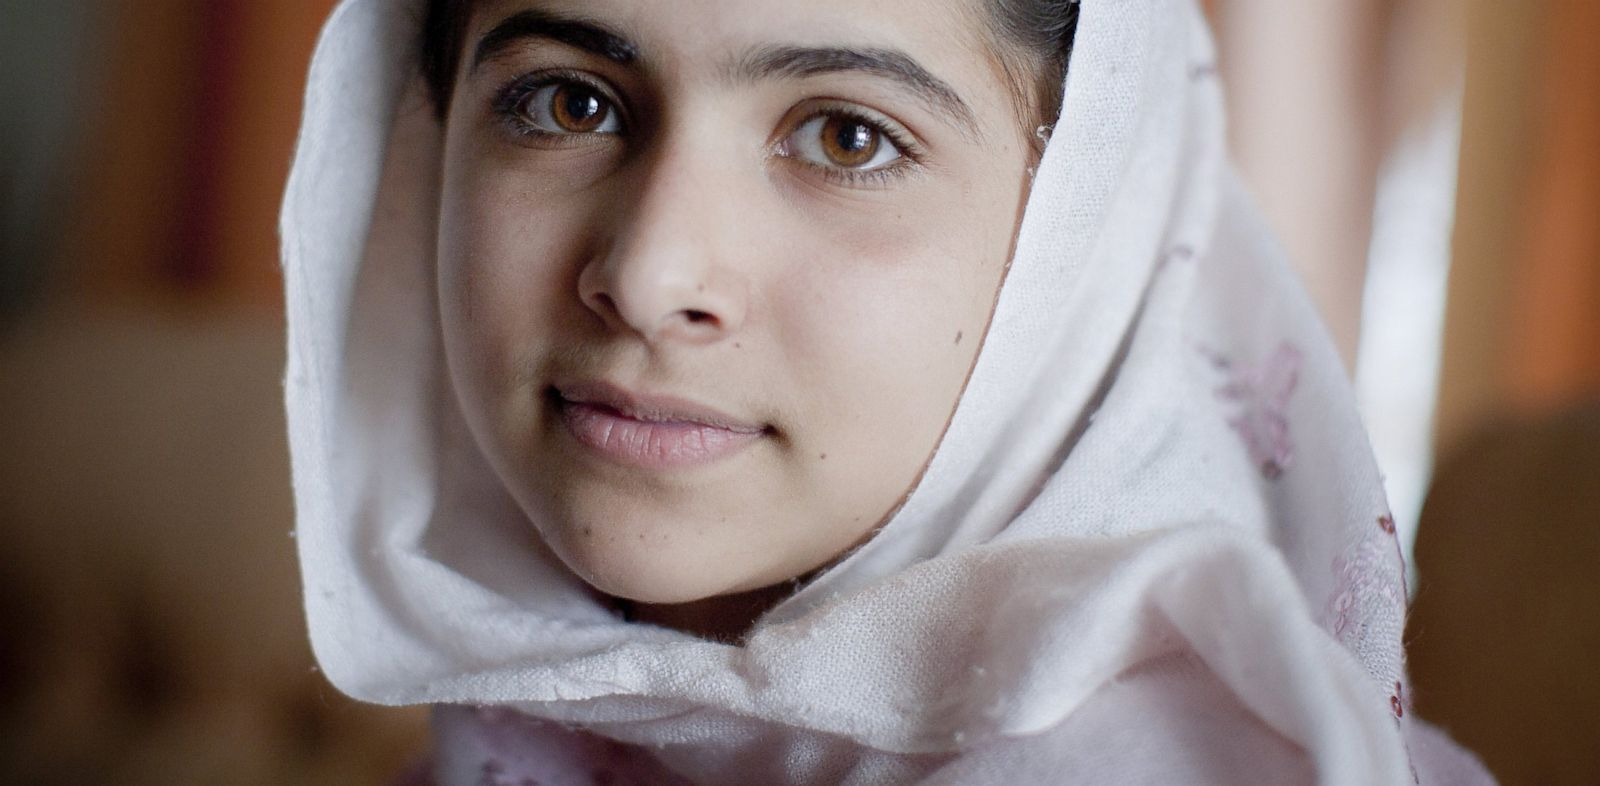 PHOTO: Malala Yousafzai